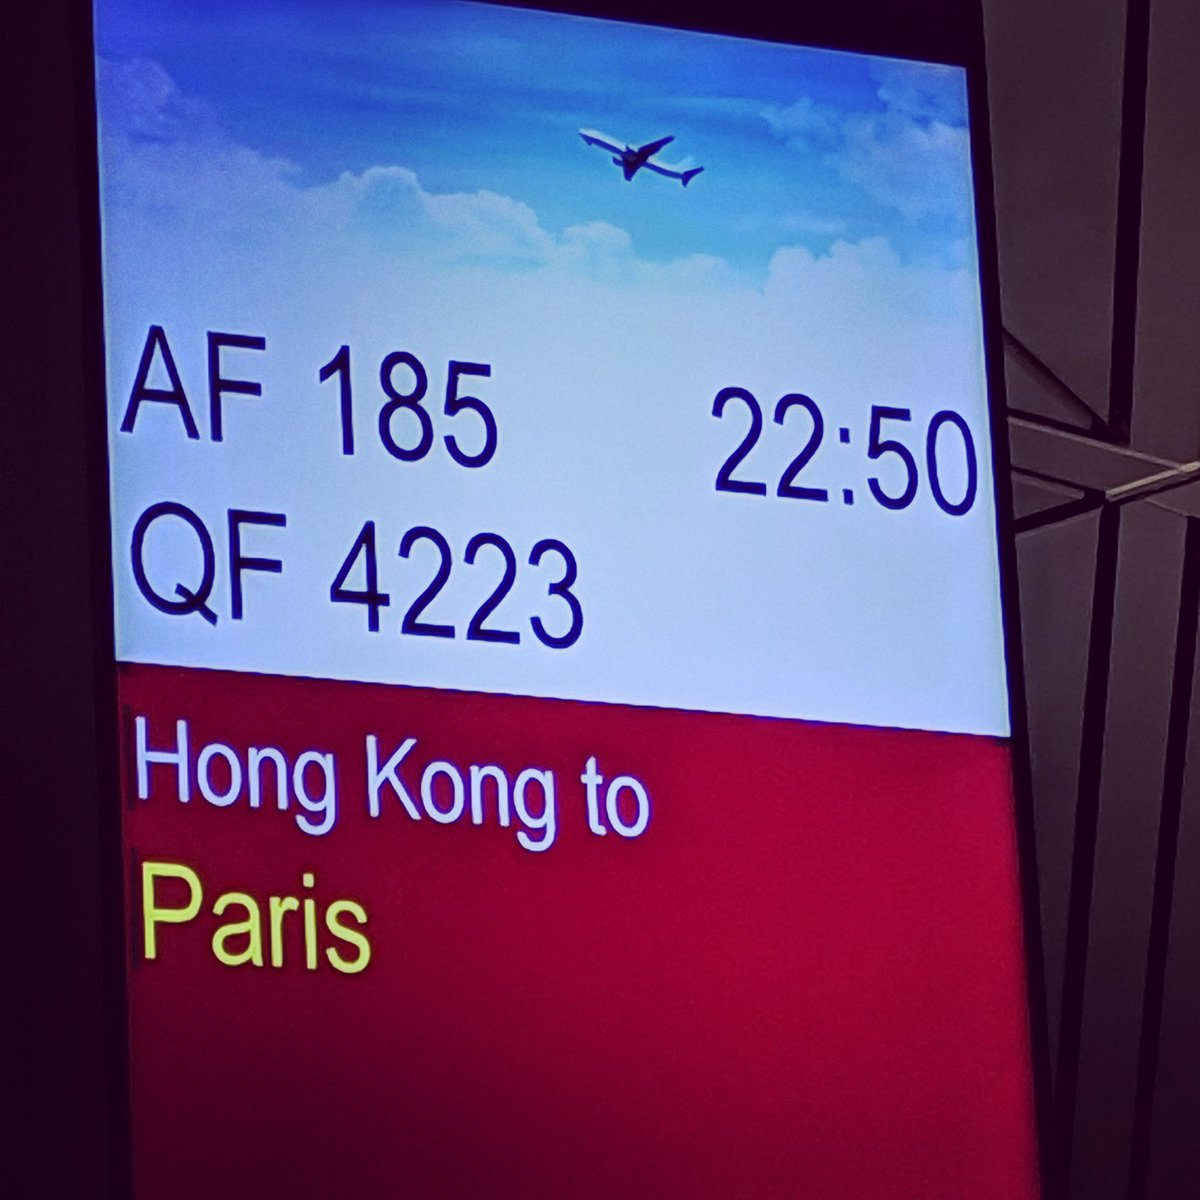 #Flight #5 is taking me back home to #reallife. This trip to support @HeroRATs🐭 landmine work in #Cambodia has made me even more dedicated having seen 1st hand the impact of their work. 🙏 to all of you that have adopted rats 🐭. You rock! 👊💋 #impact #rats #innovation #travel